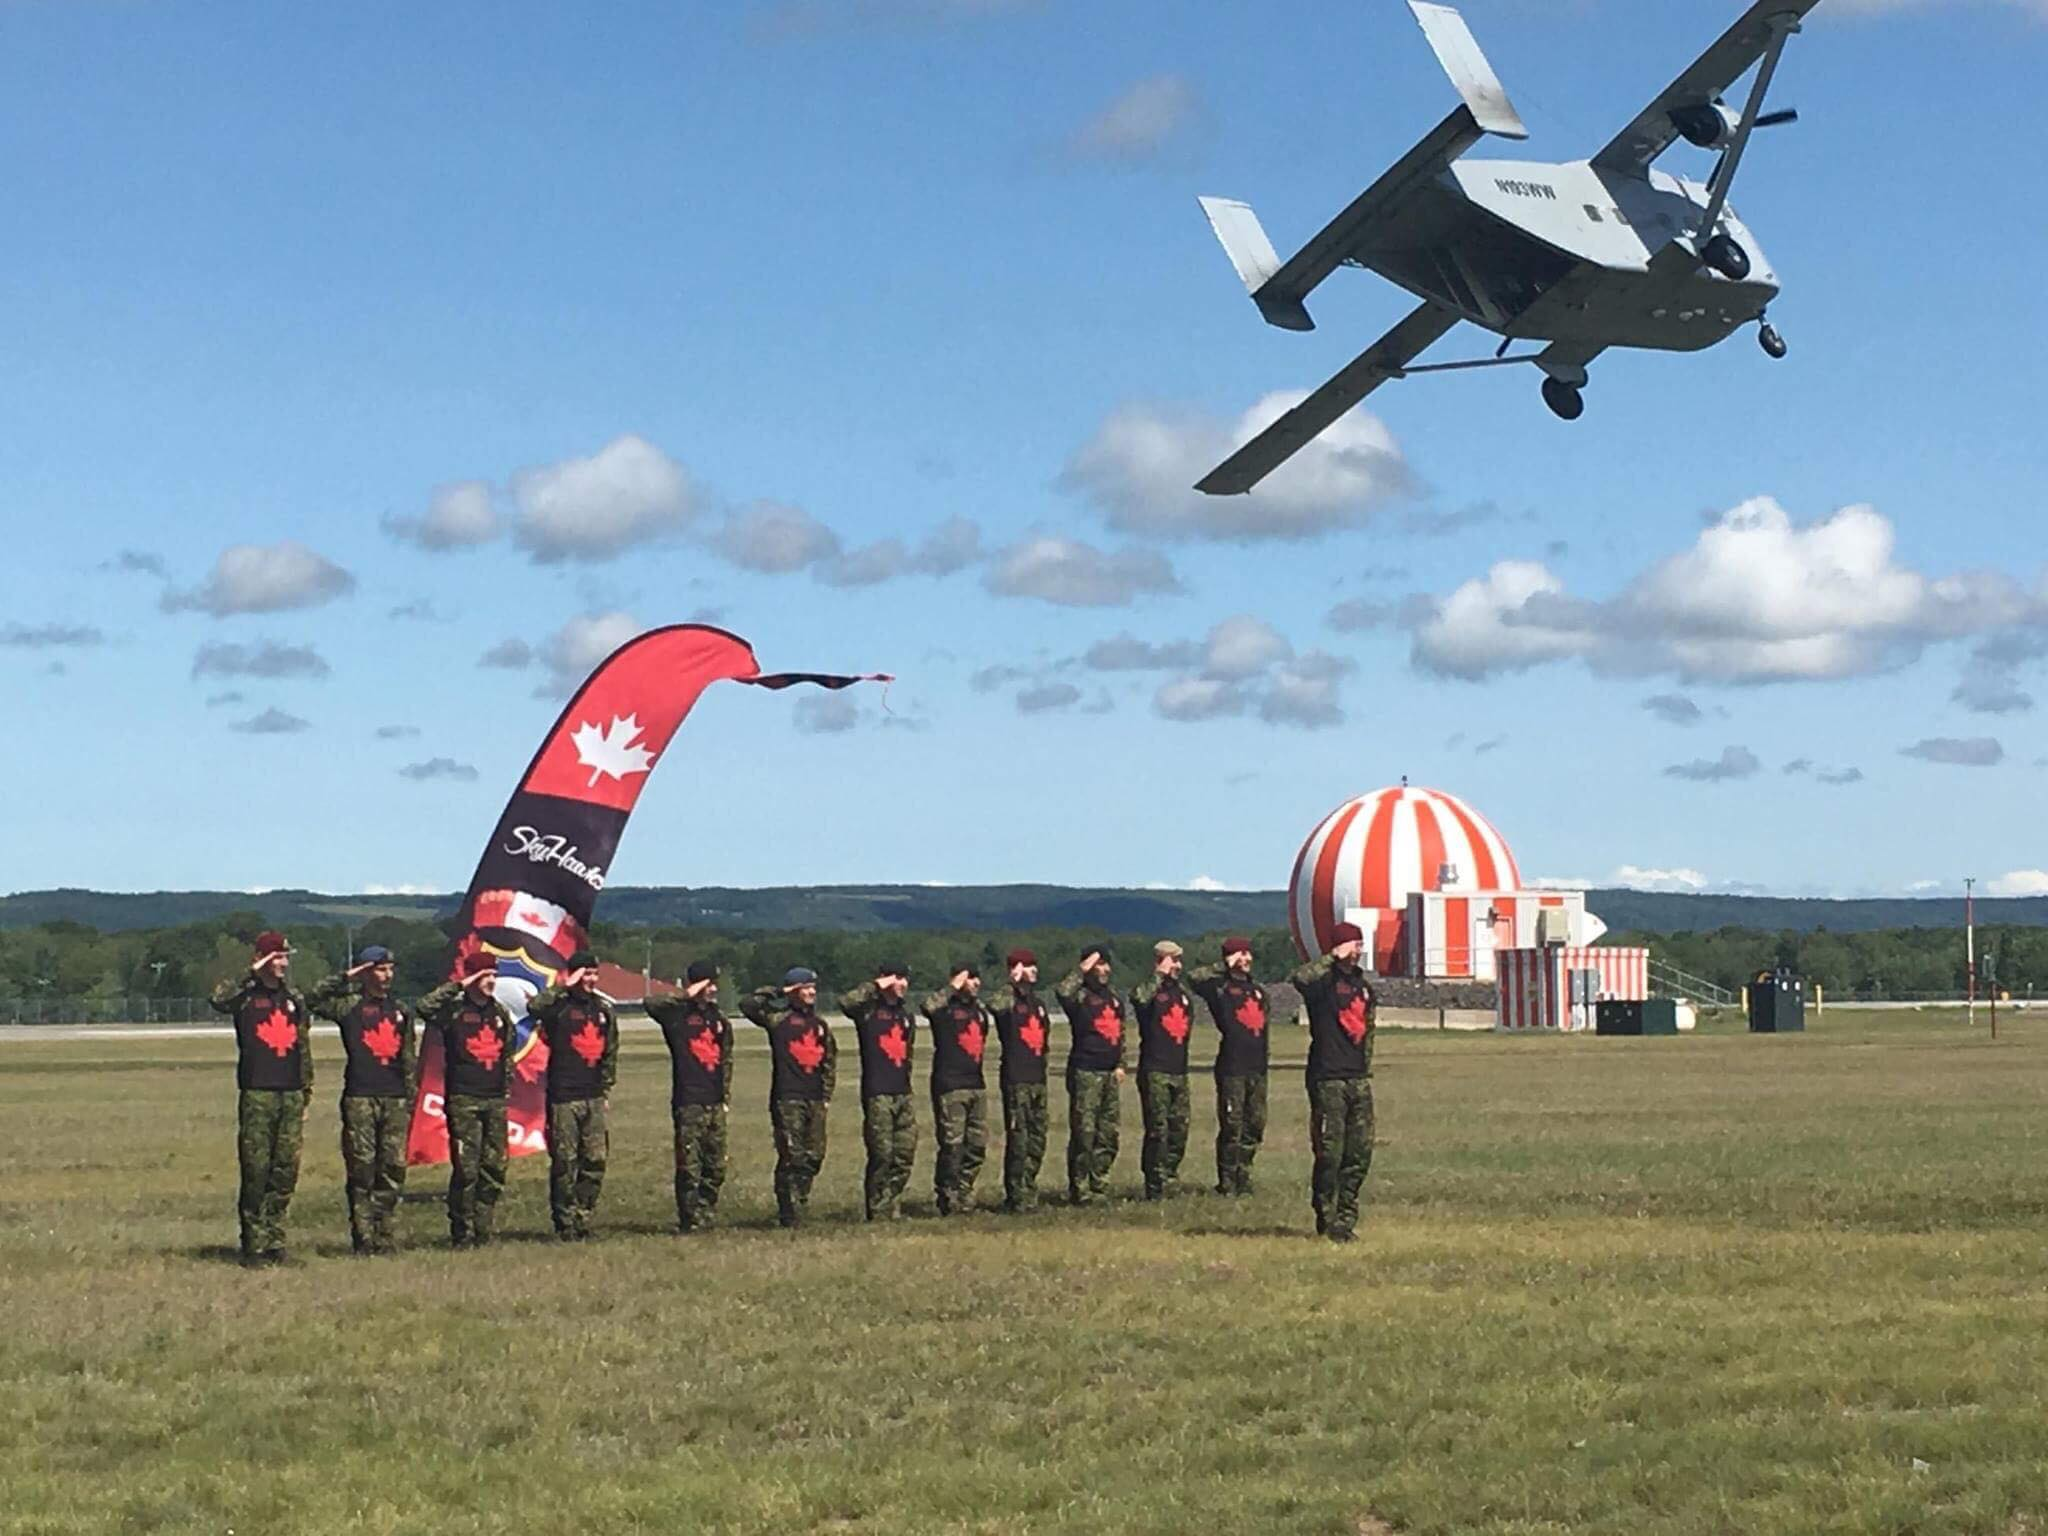 "The SkyHawks line up for the ""salute line"" as their jump aircraft, the SkyVan, makes a low pass at the end of their performance during the Atlantic Canada International Air Show at 14 Wing Greenwood, Nova Scotia, in late August 2017. PHOTO: Via SkyHawks Facebook page"